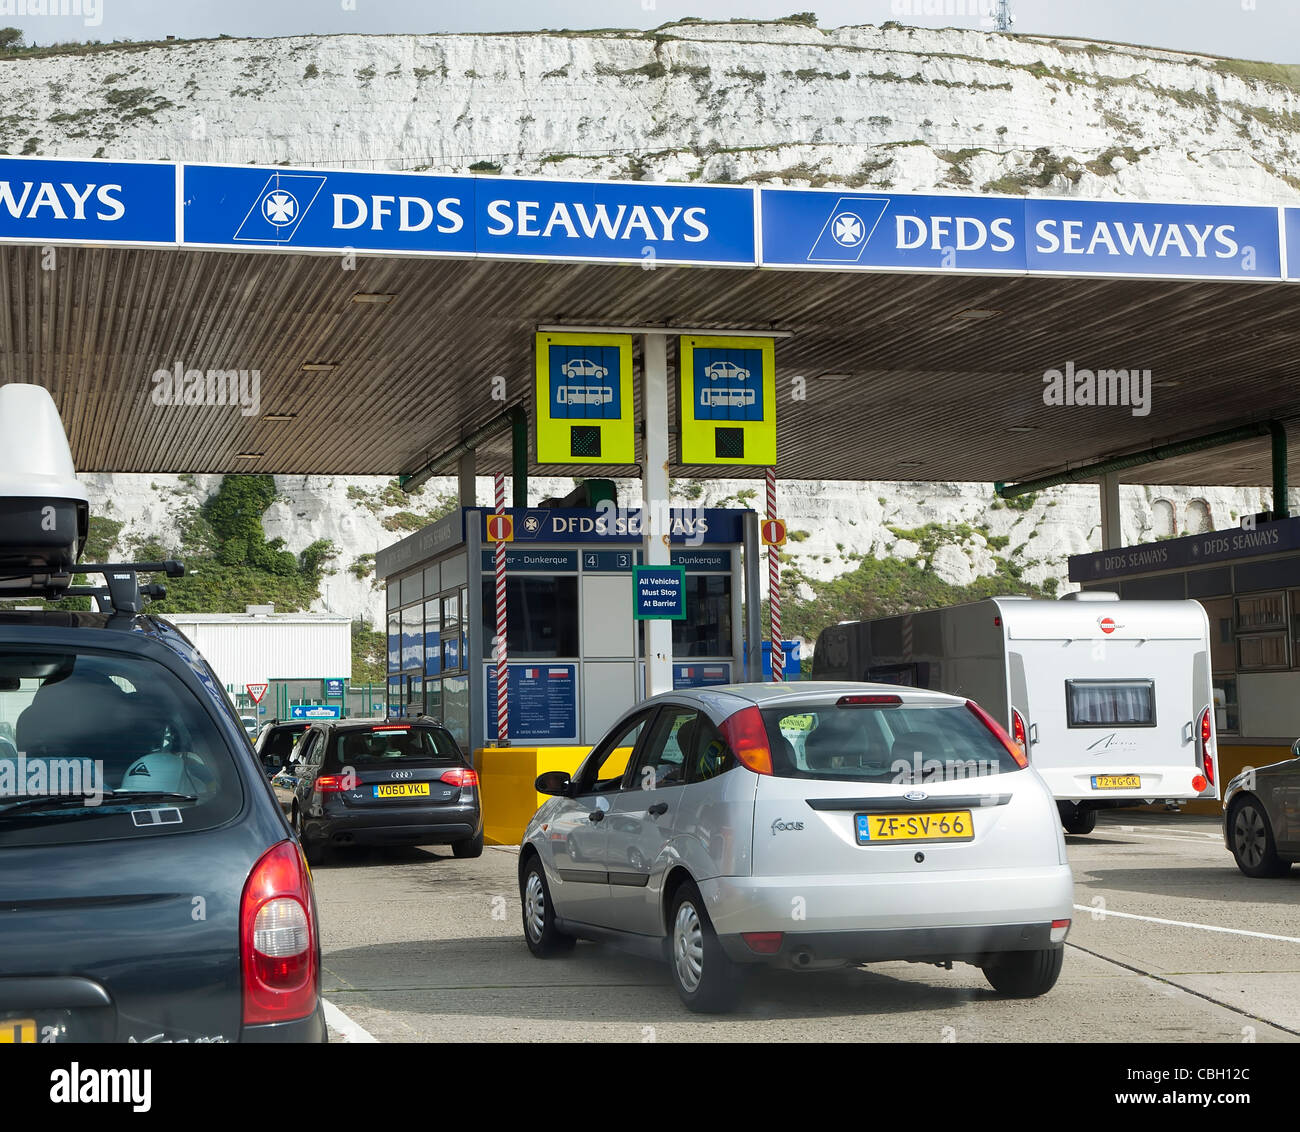 Cars queuing at check in line for DFDS Seaways ferries at Dover England UK - Stock Image